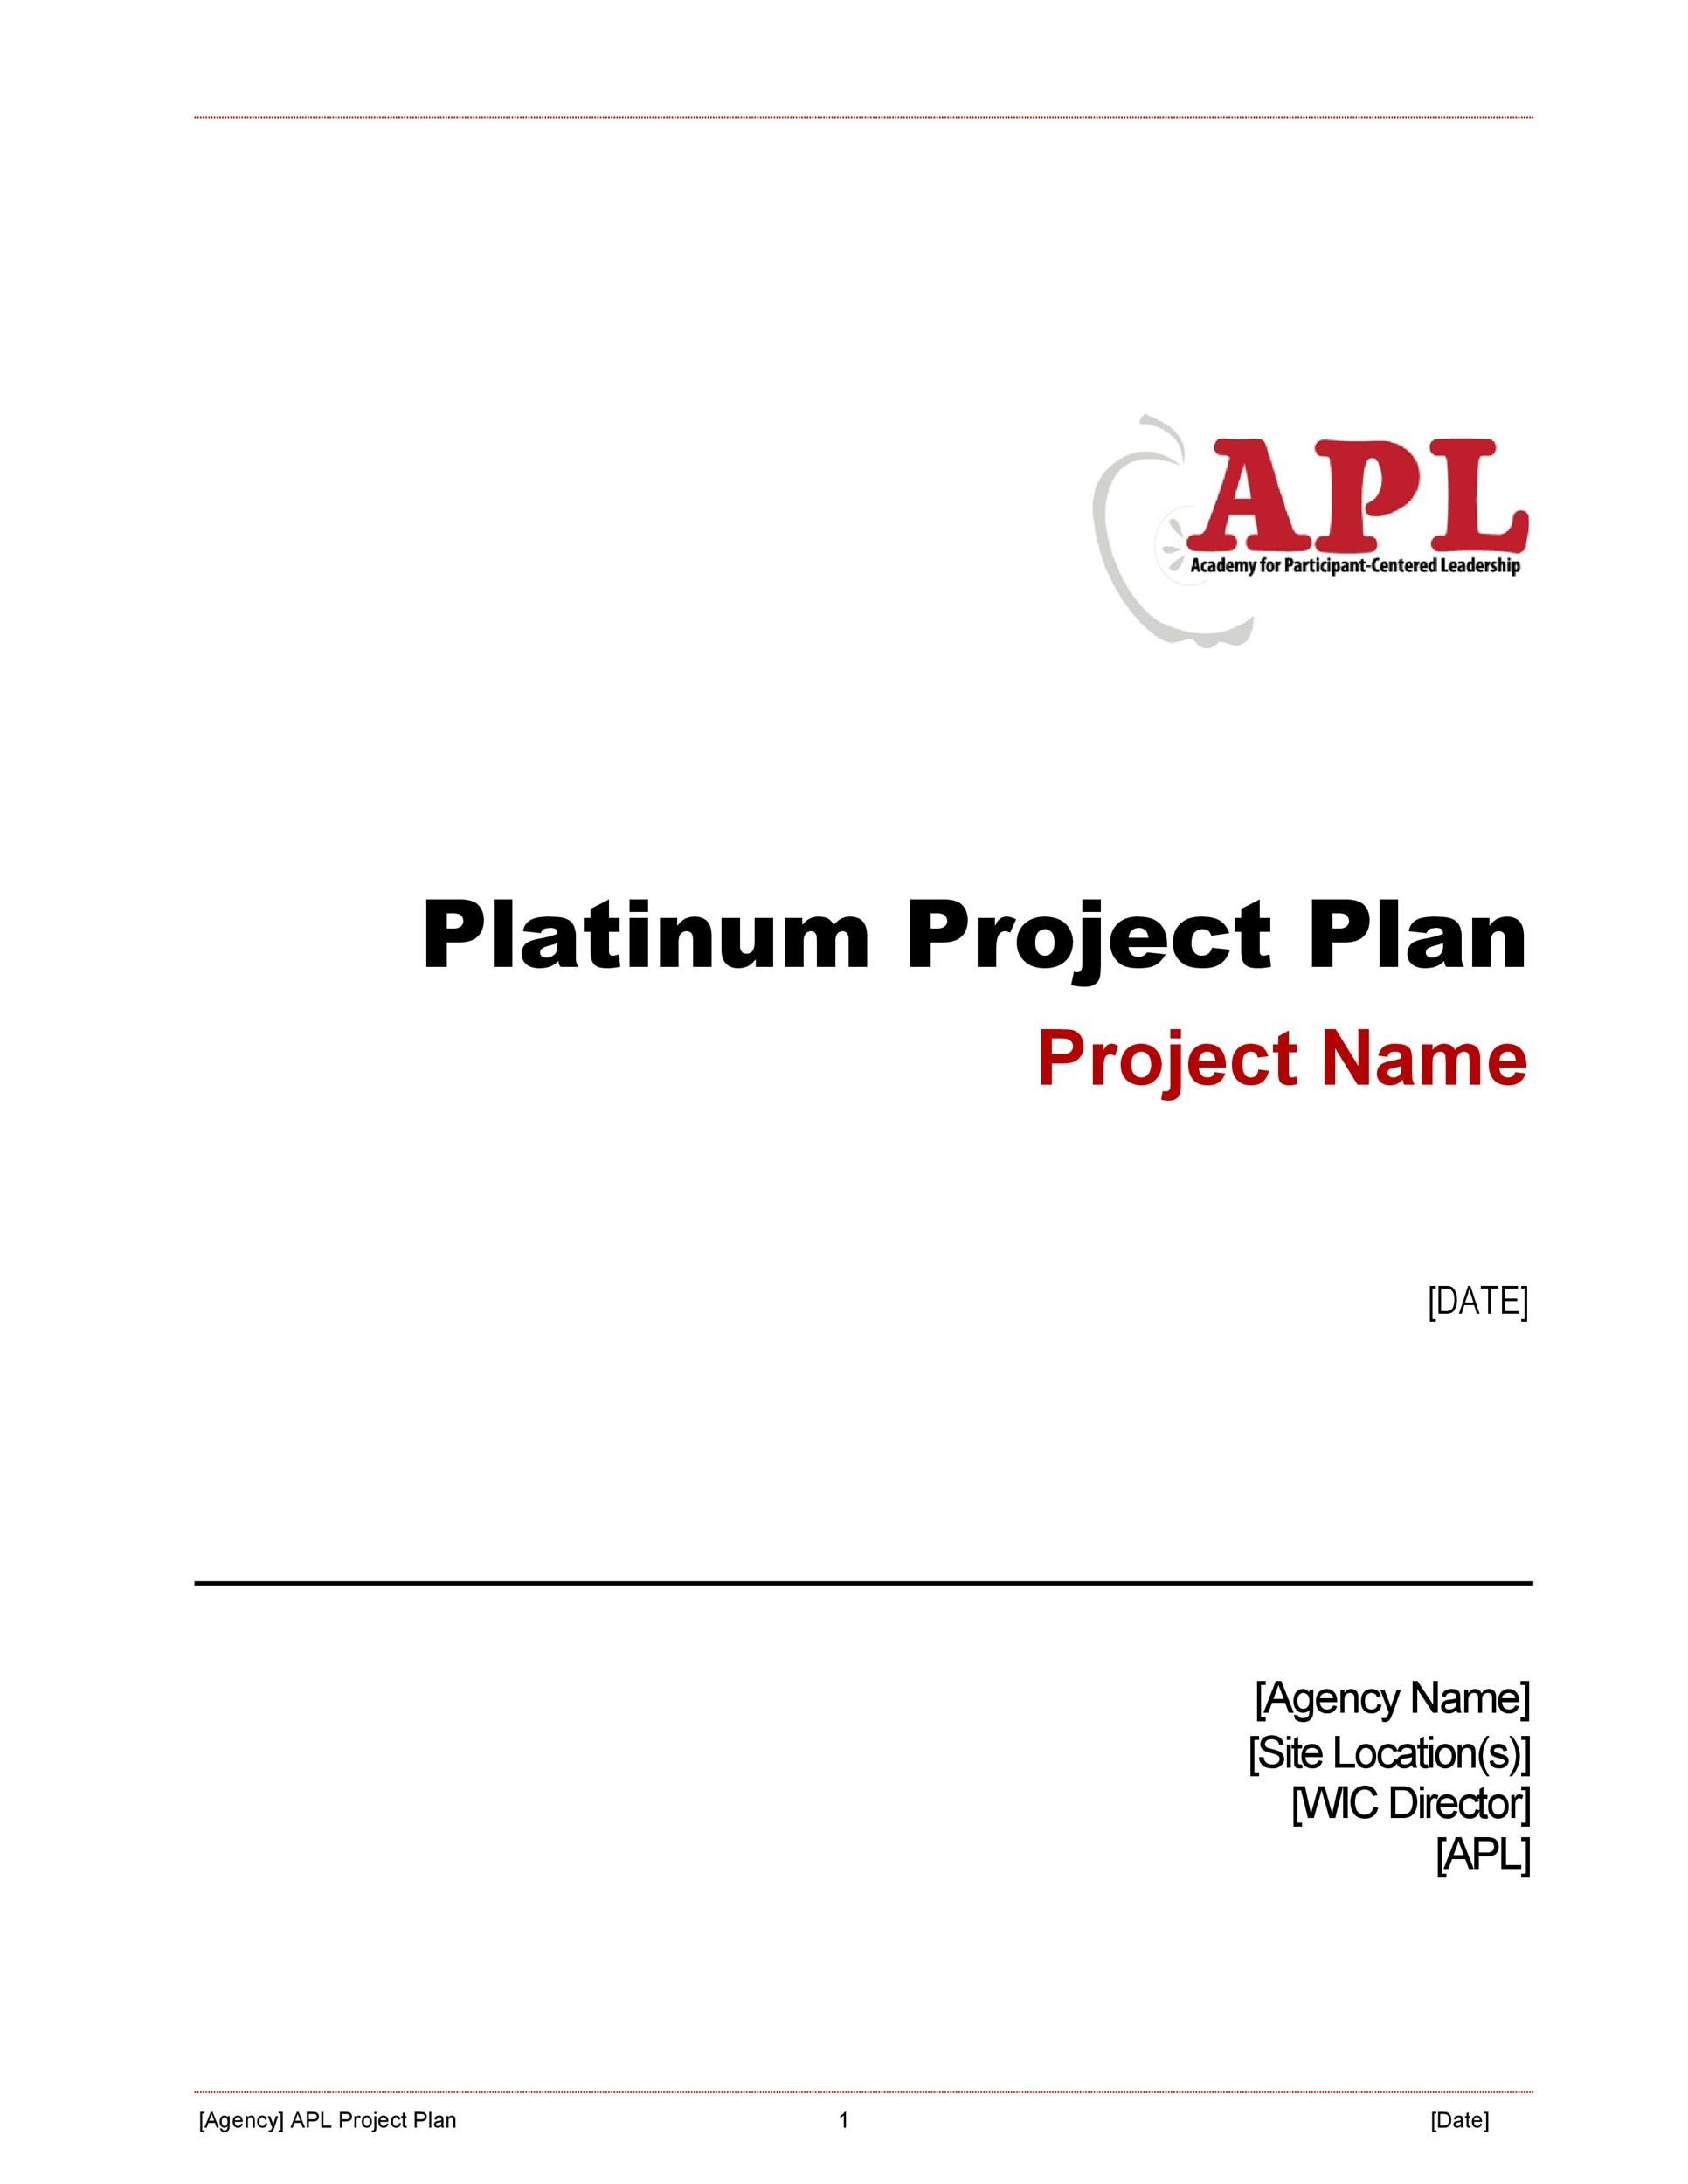 48 Professional Project Plan Templates Excel, Word, PDF - Template Lab - project plan template